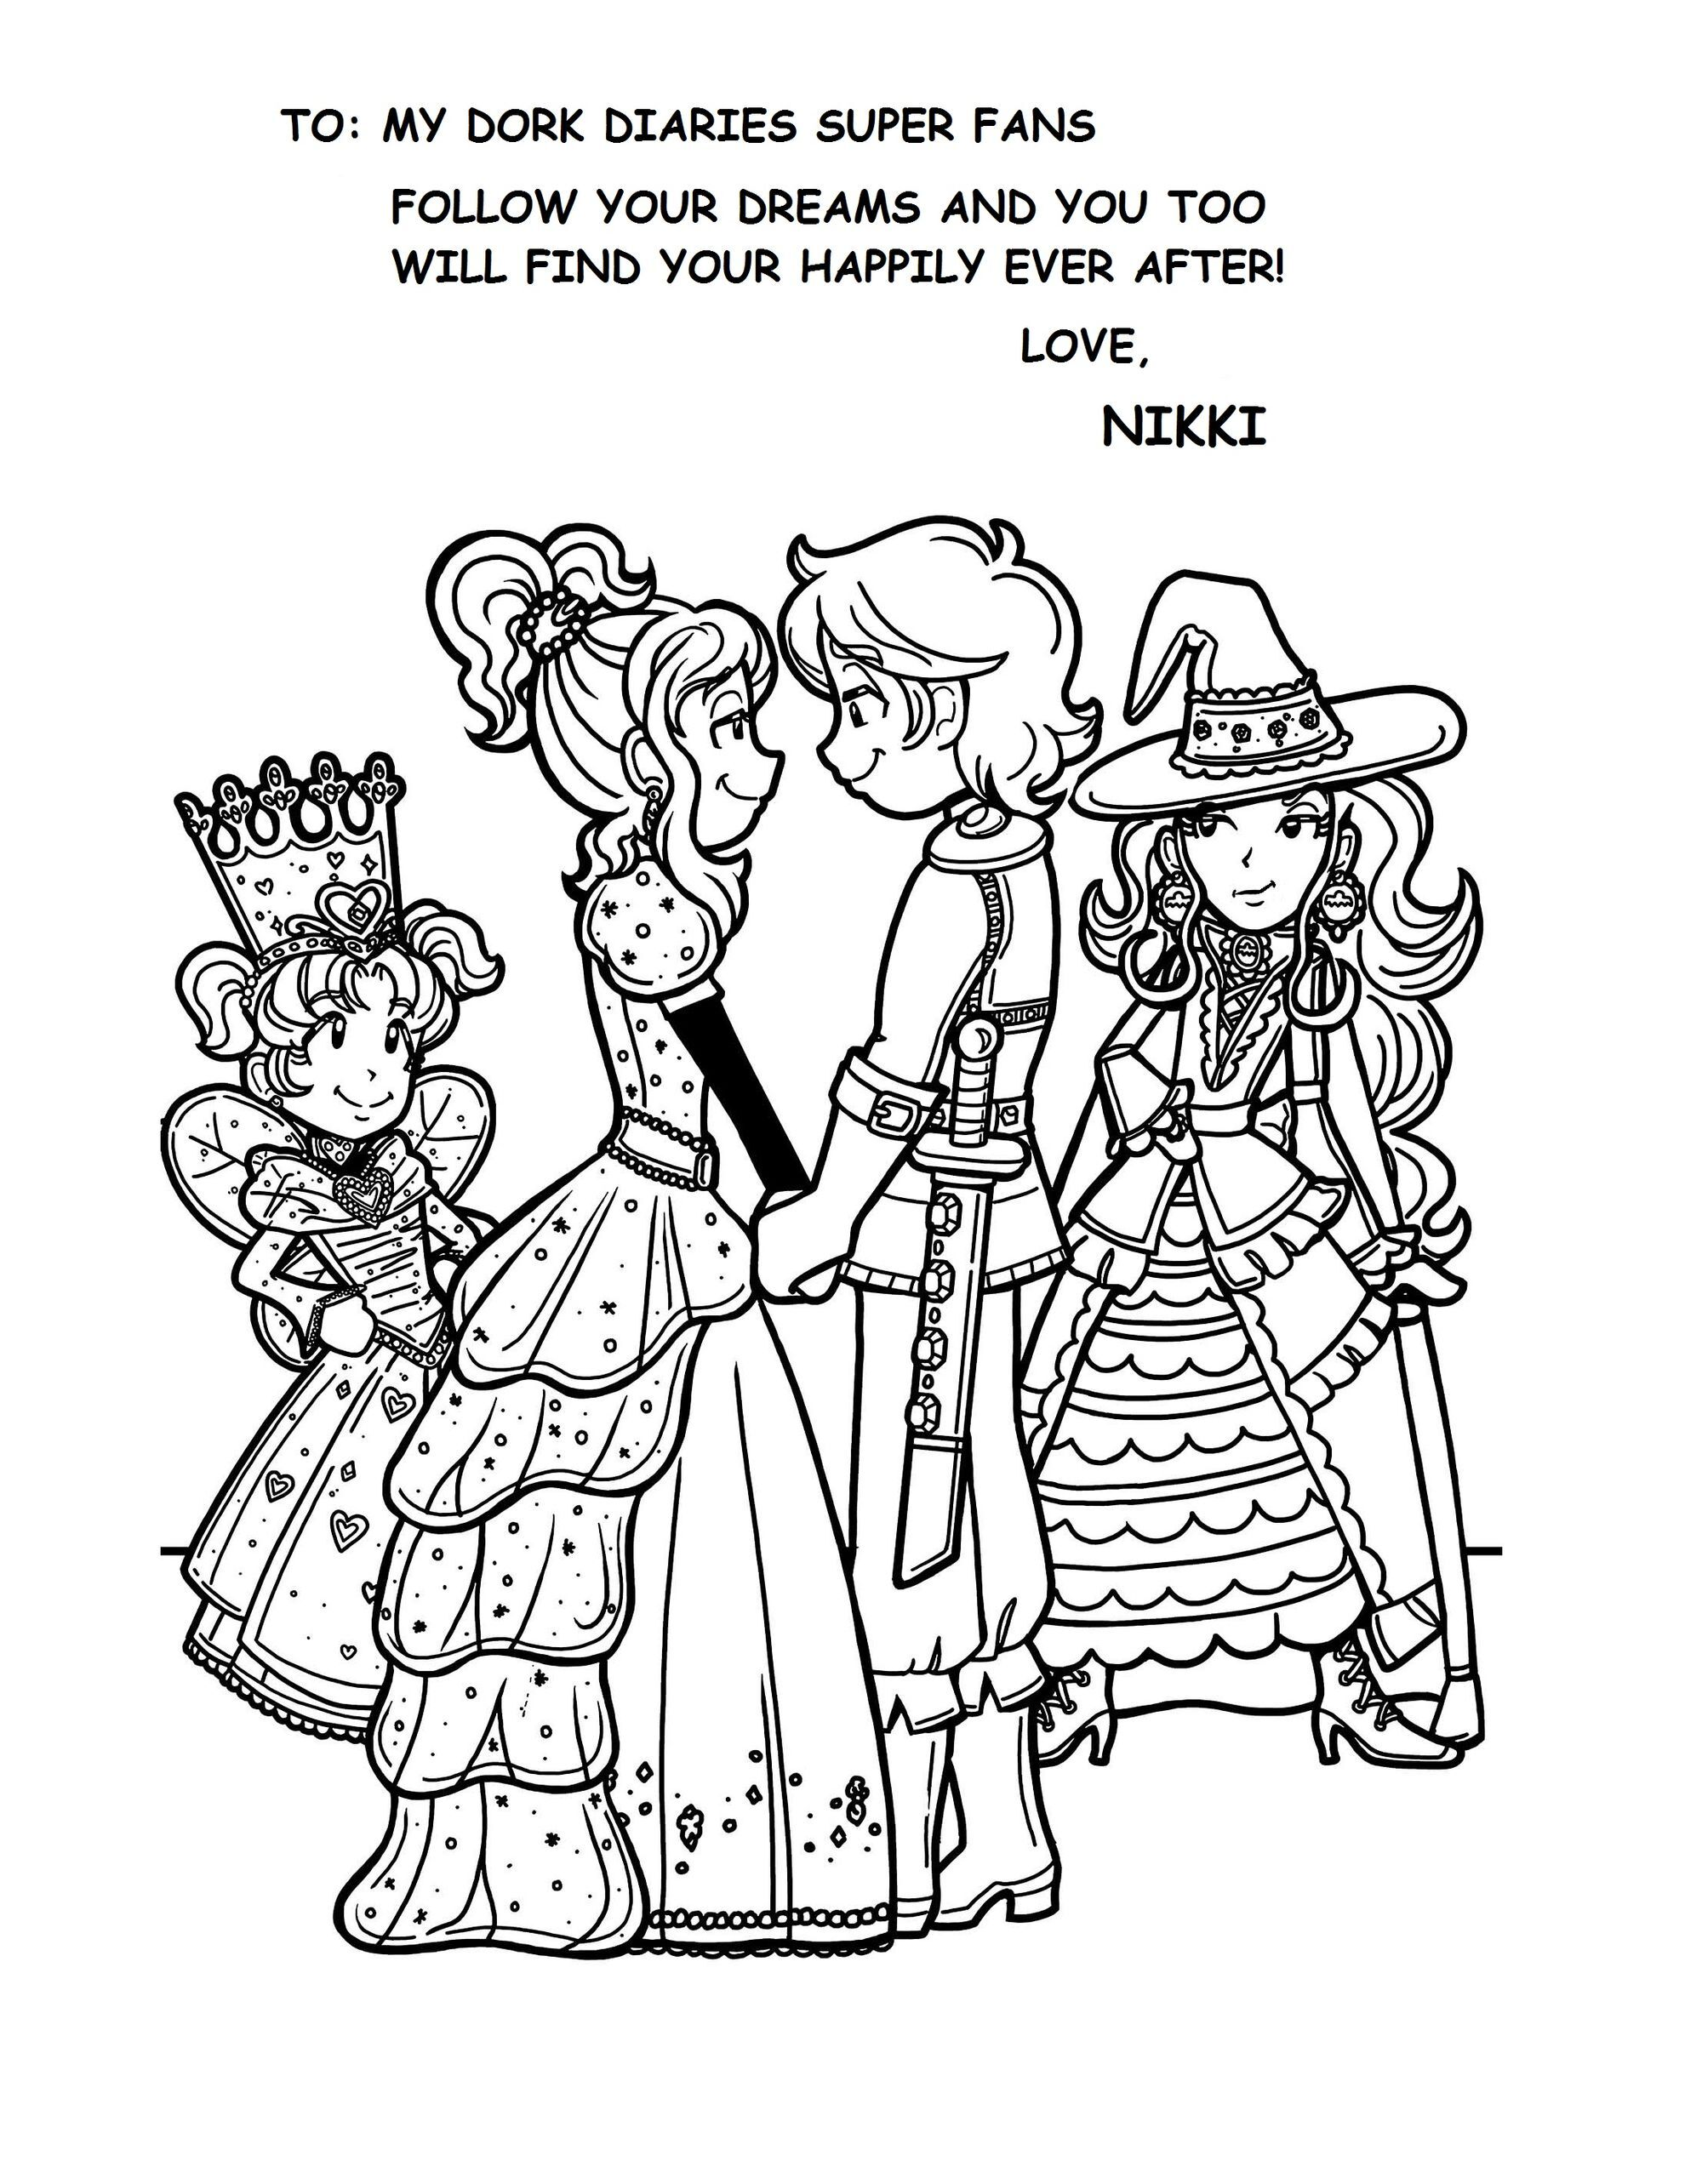 Coloring pages for dork diaries - Special Edition Dork Diaries Book 8 Fan Art1